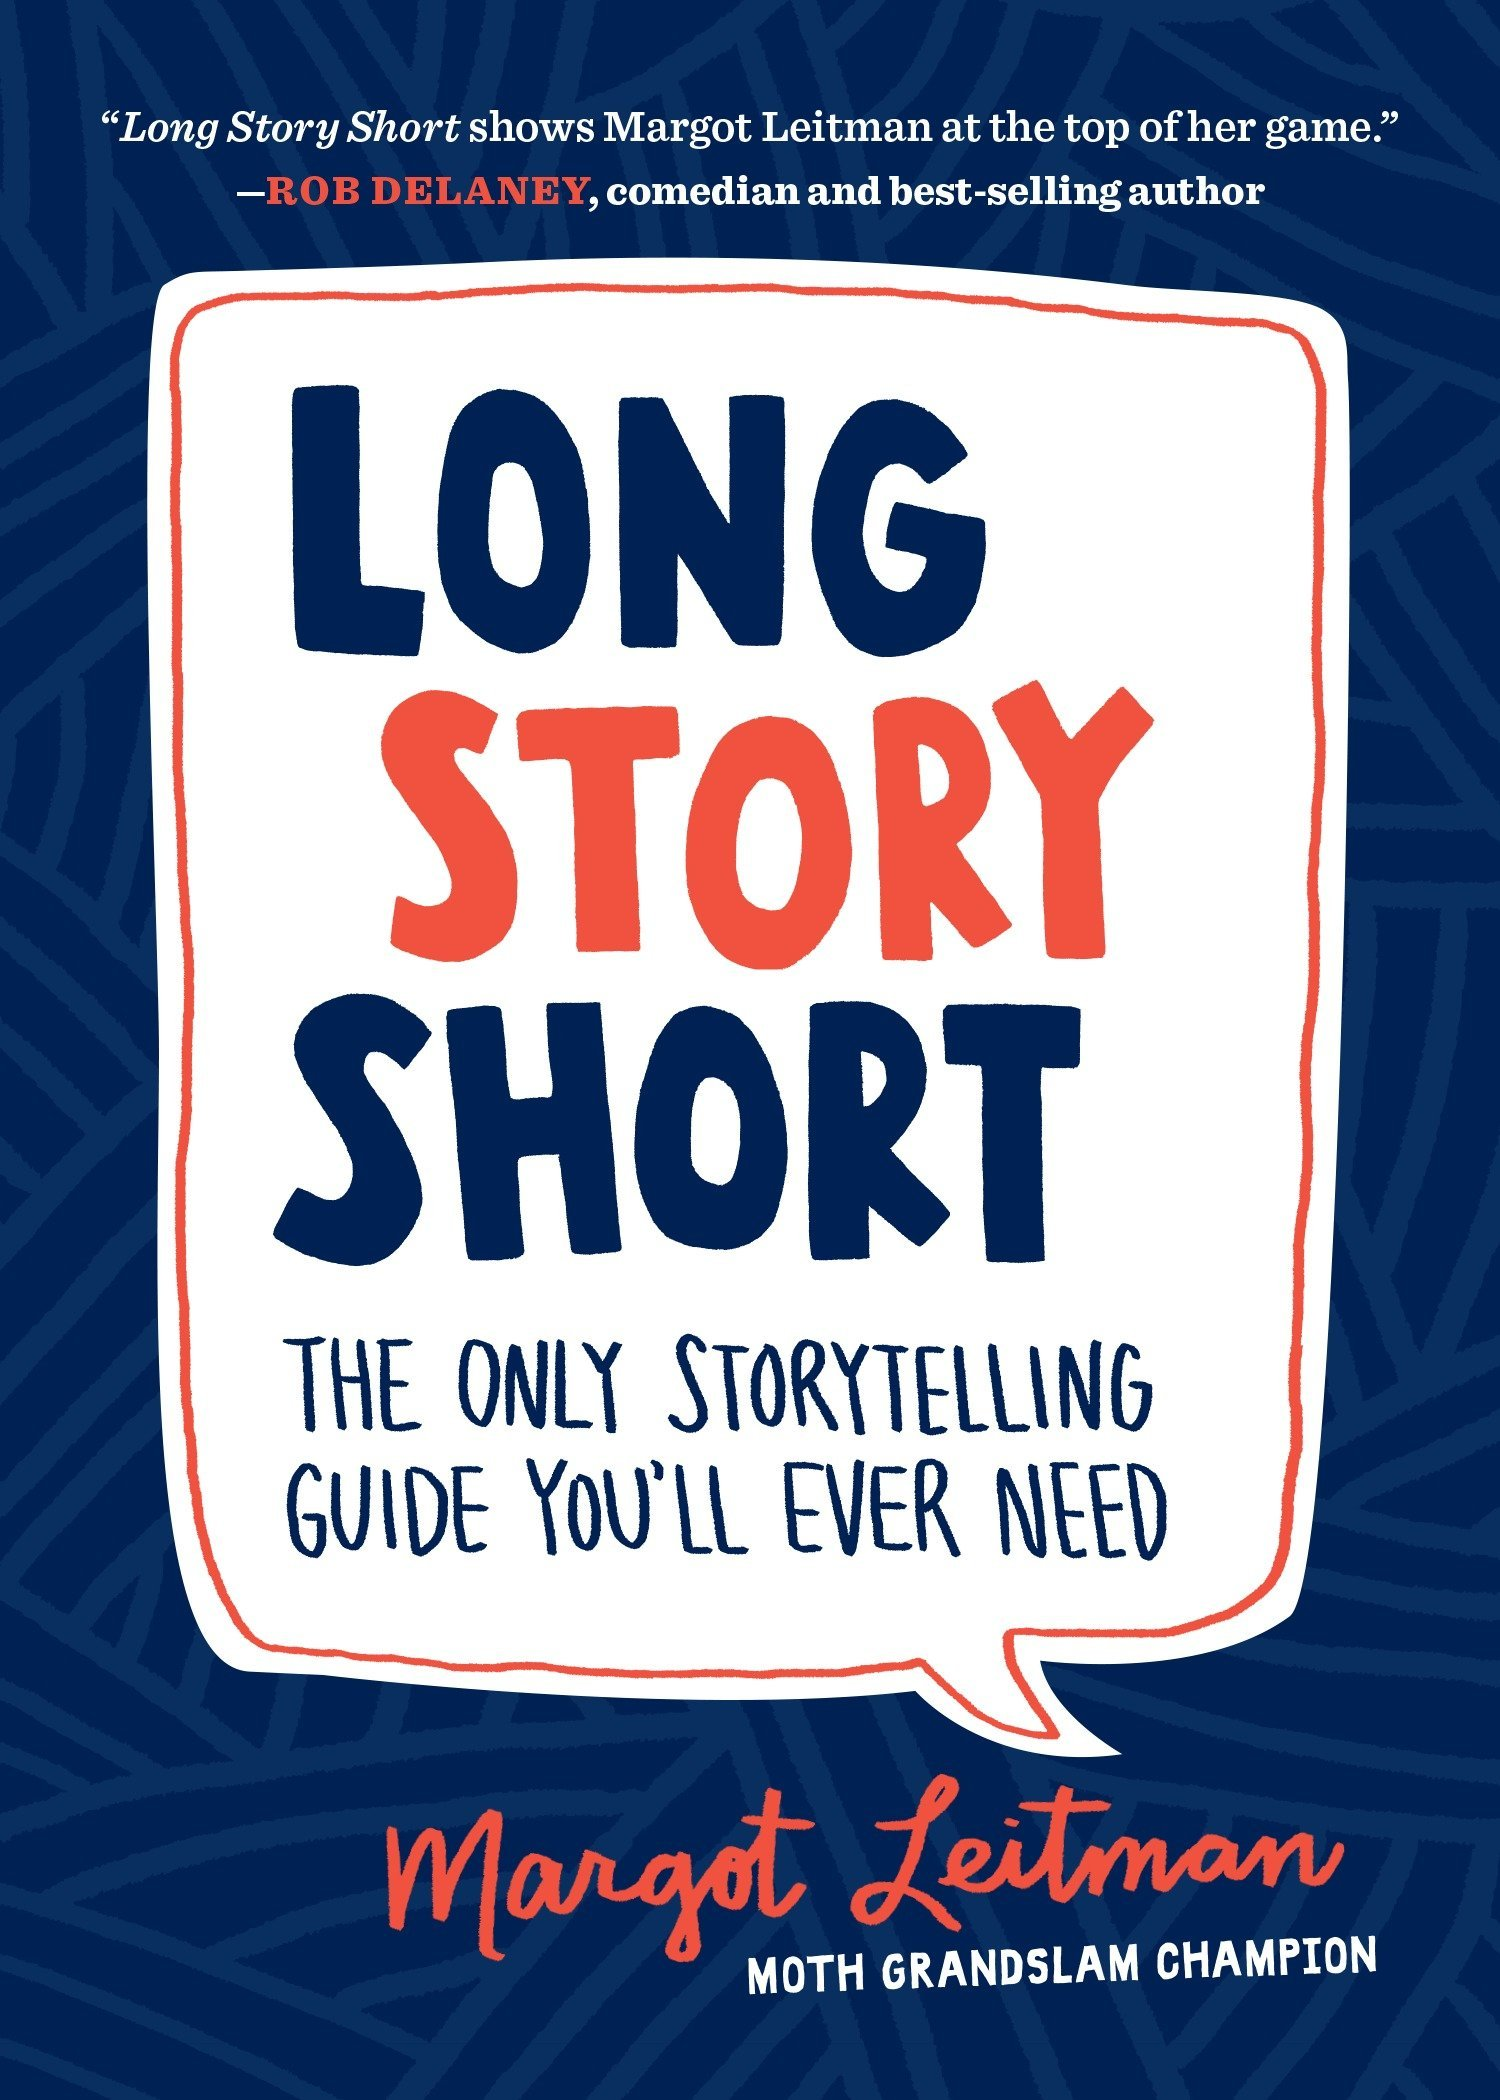 Long Story Short: The Only Storytelling Guide You'll Ever Need by Sasquatch Books